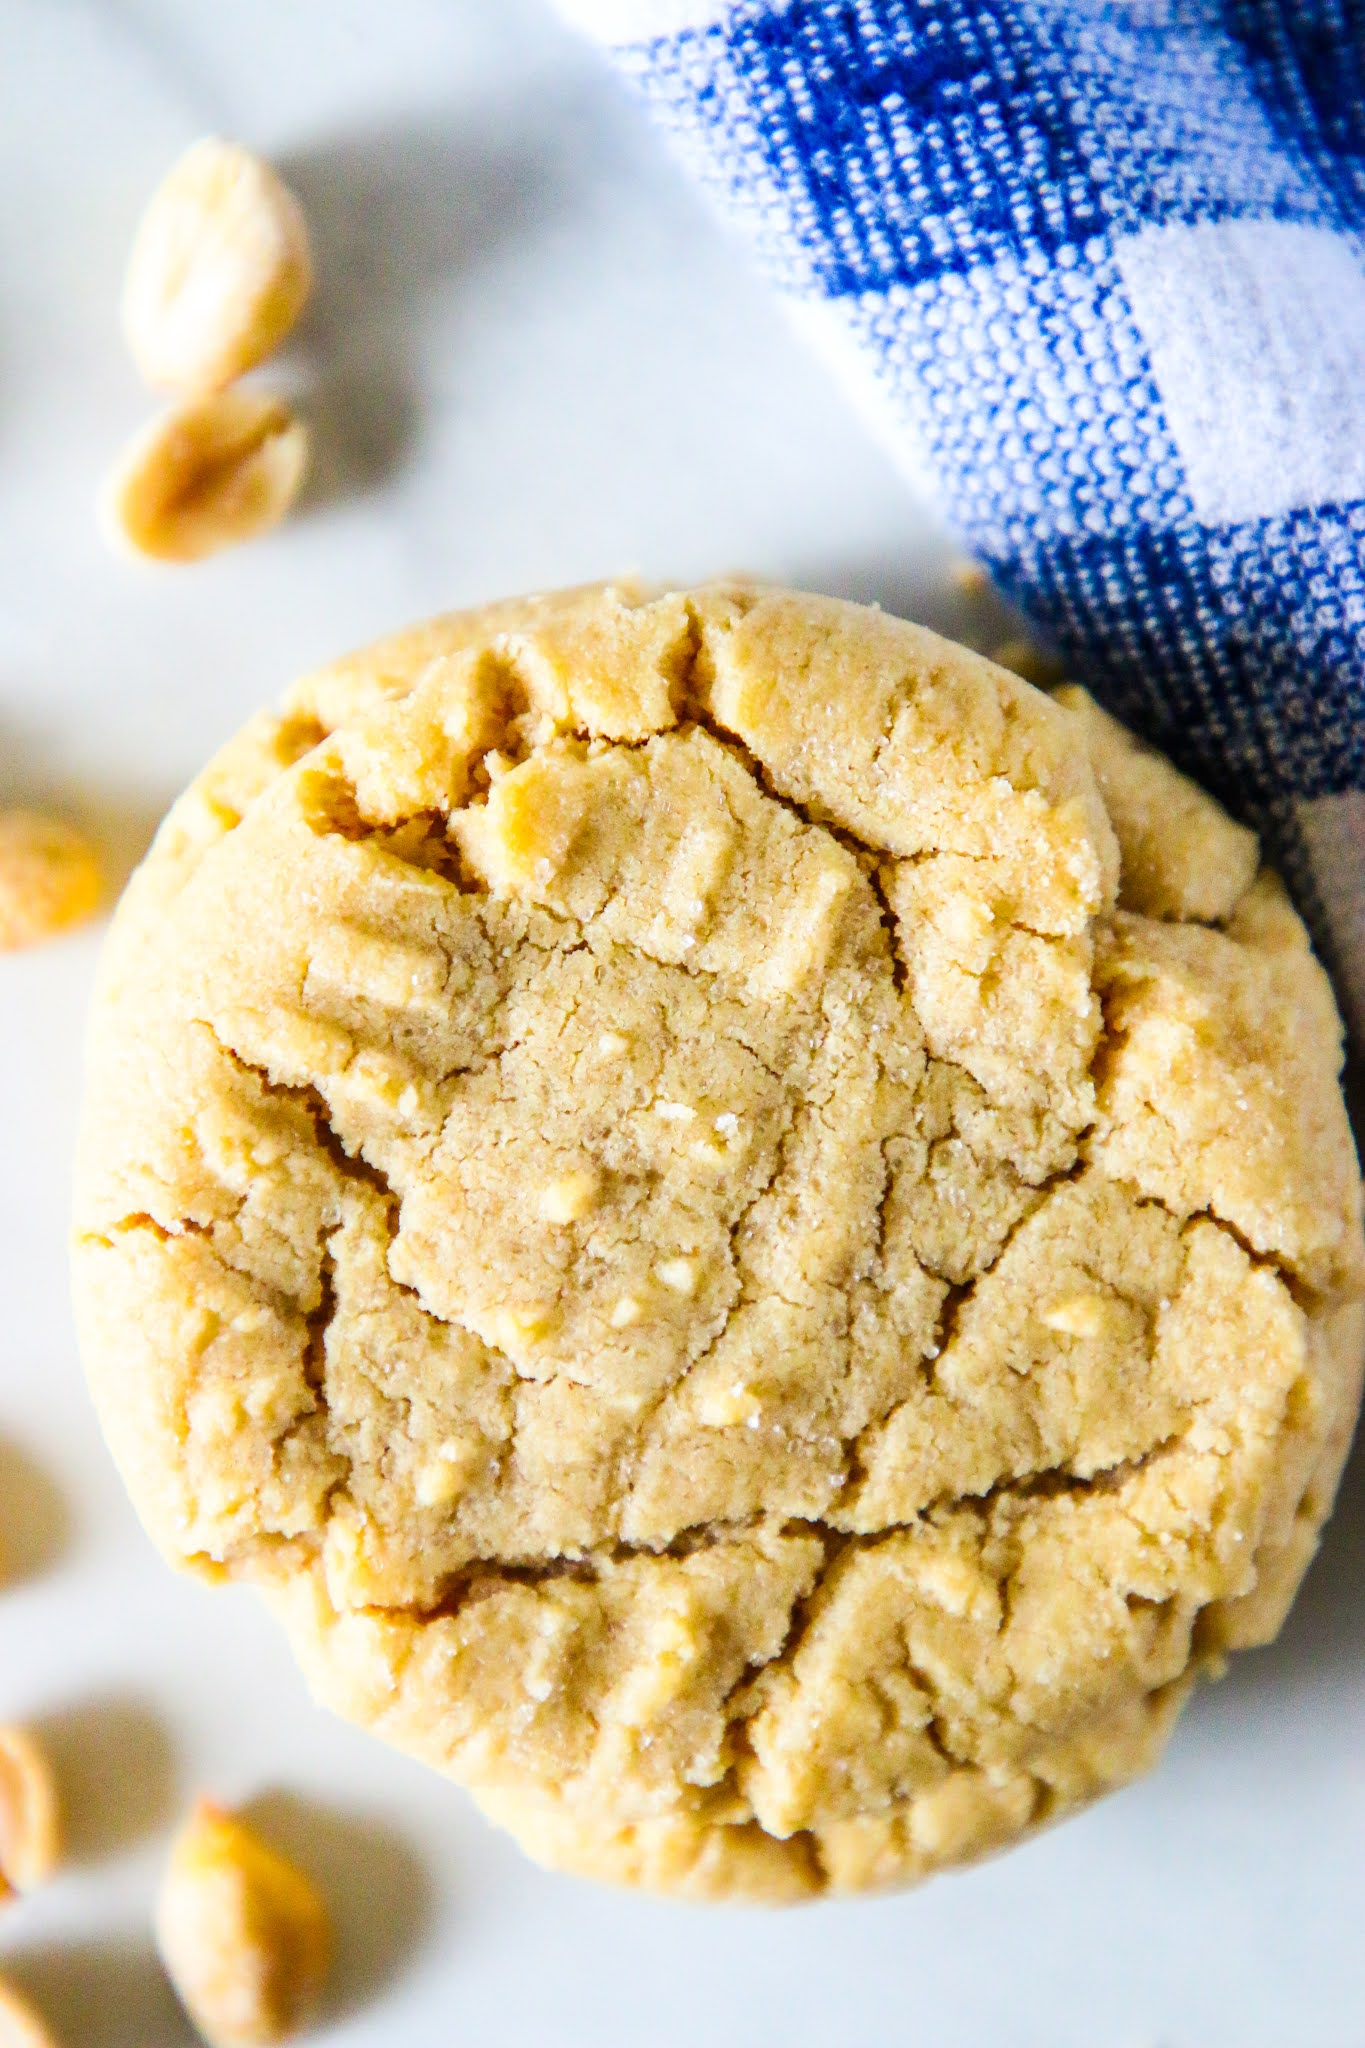 Peanut butter cookies on a marble table scattered with small peanuts and a blue dish towel in the background.